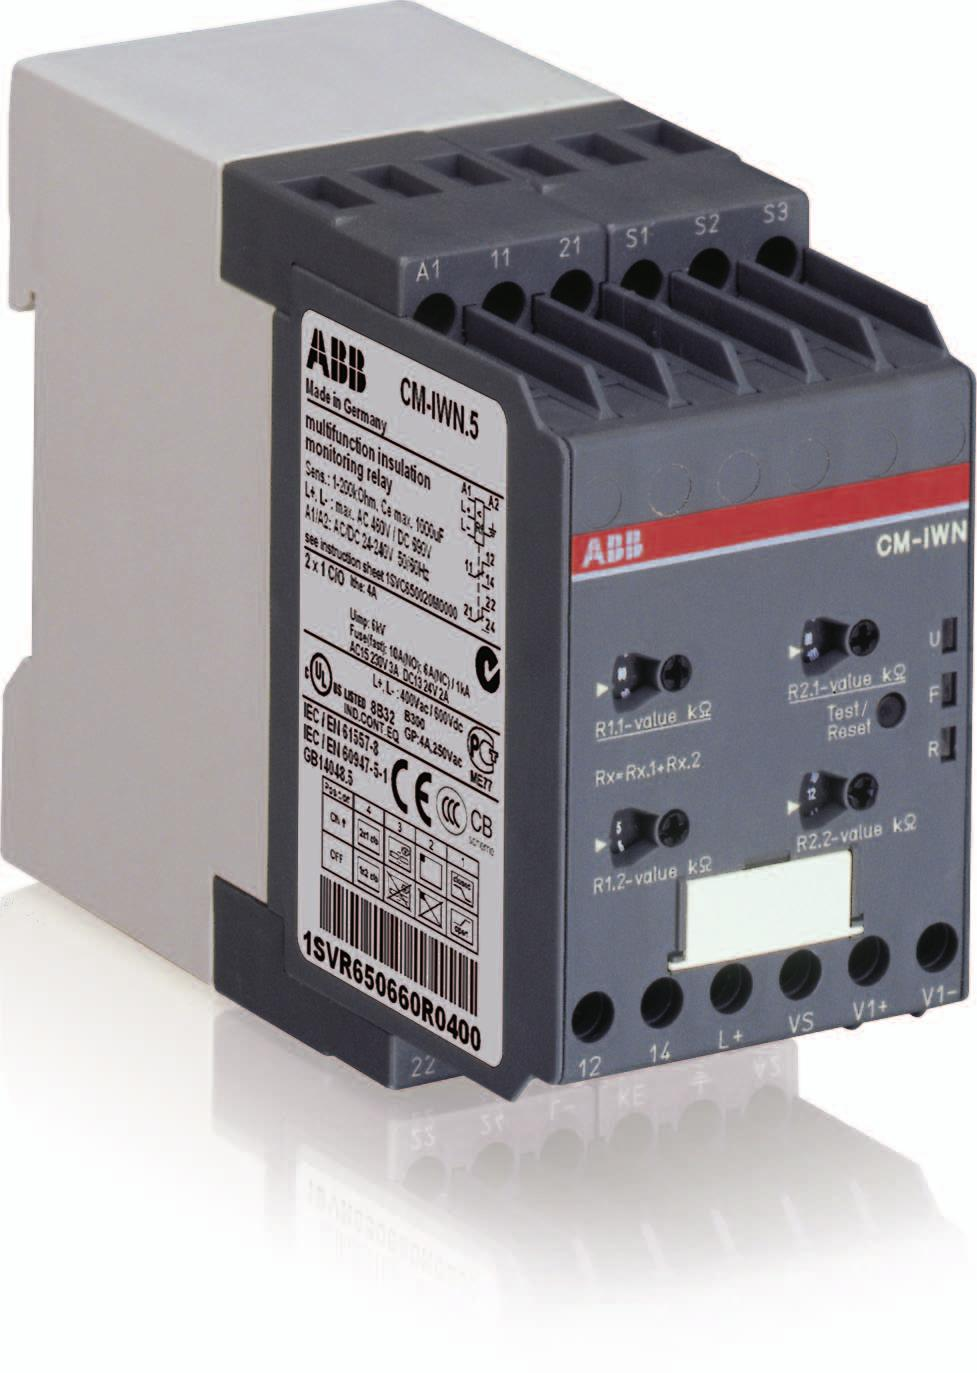 Data sheet Insulation monitoring relay CM-IWN.5 For unearthed AC, DC and mixed AC/DC systems up to U n = 400 V AC and 600 V DC The CM-IWN.